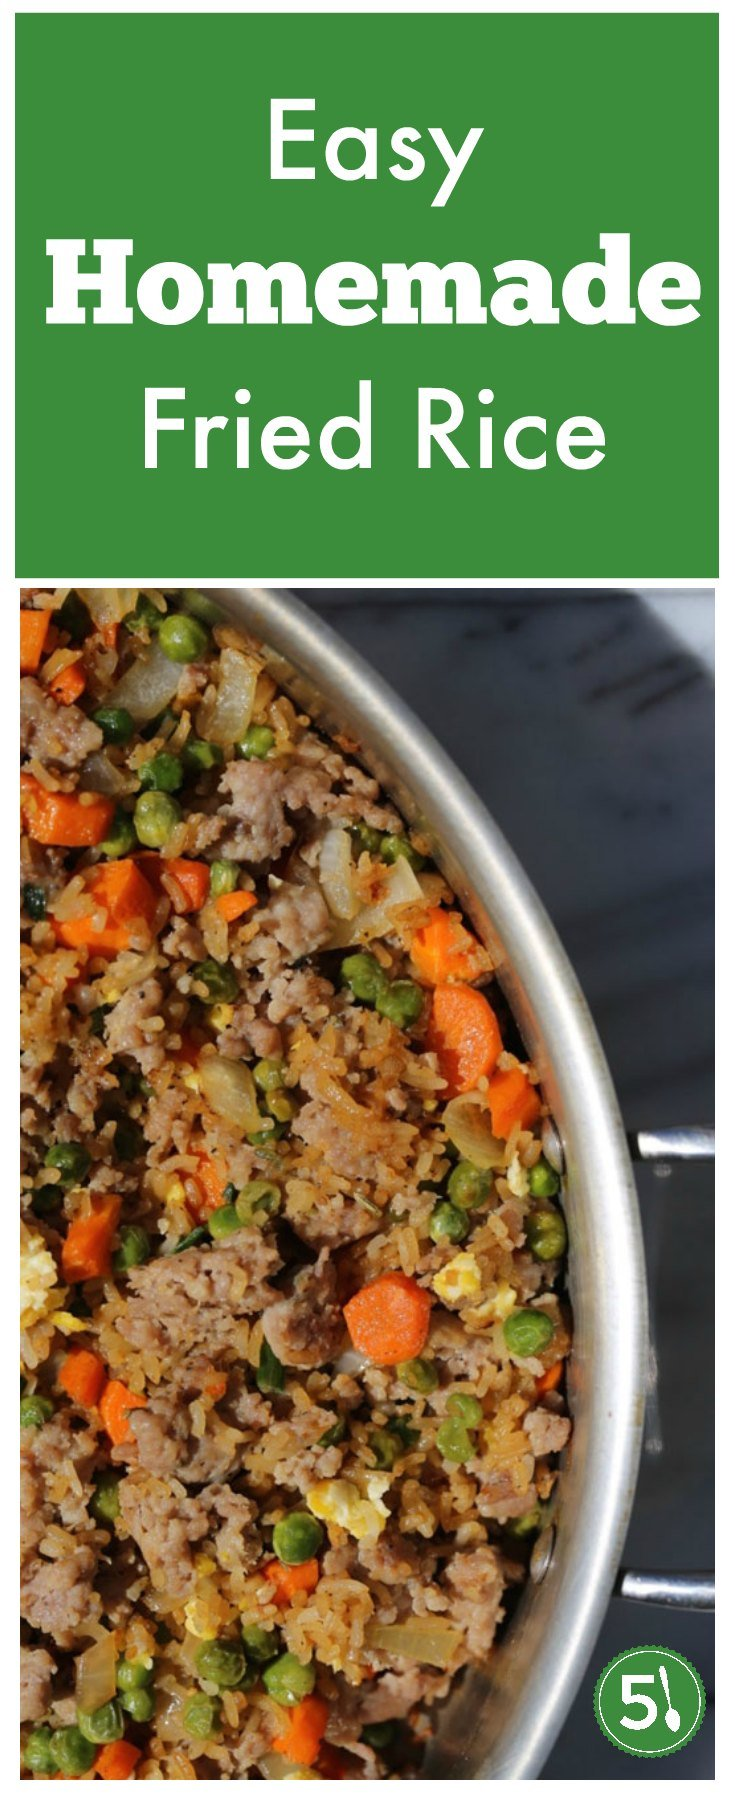 This easy homemade fried rice recipe with egg and a touch of sesame oil is better than Chinese food restaurant takeout. The rice is fluffy, veggies are fresh, add a protein, and you have a healthy and delicious dinner.